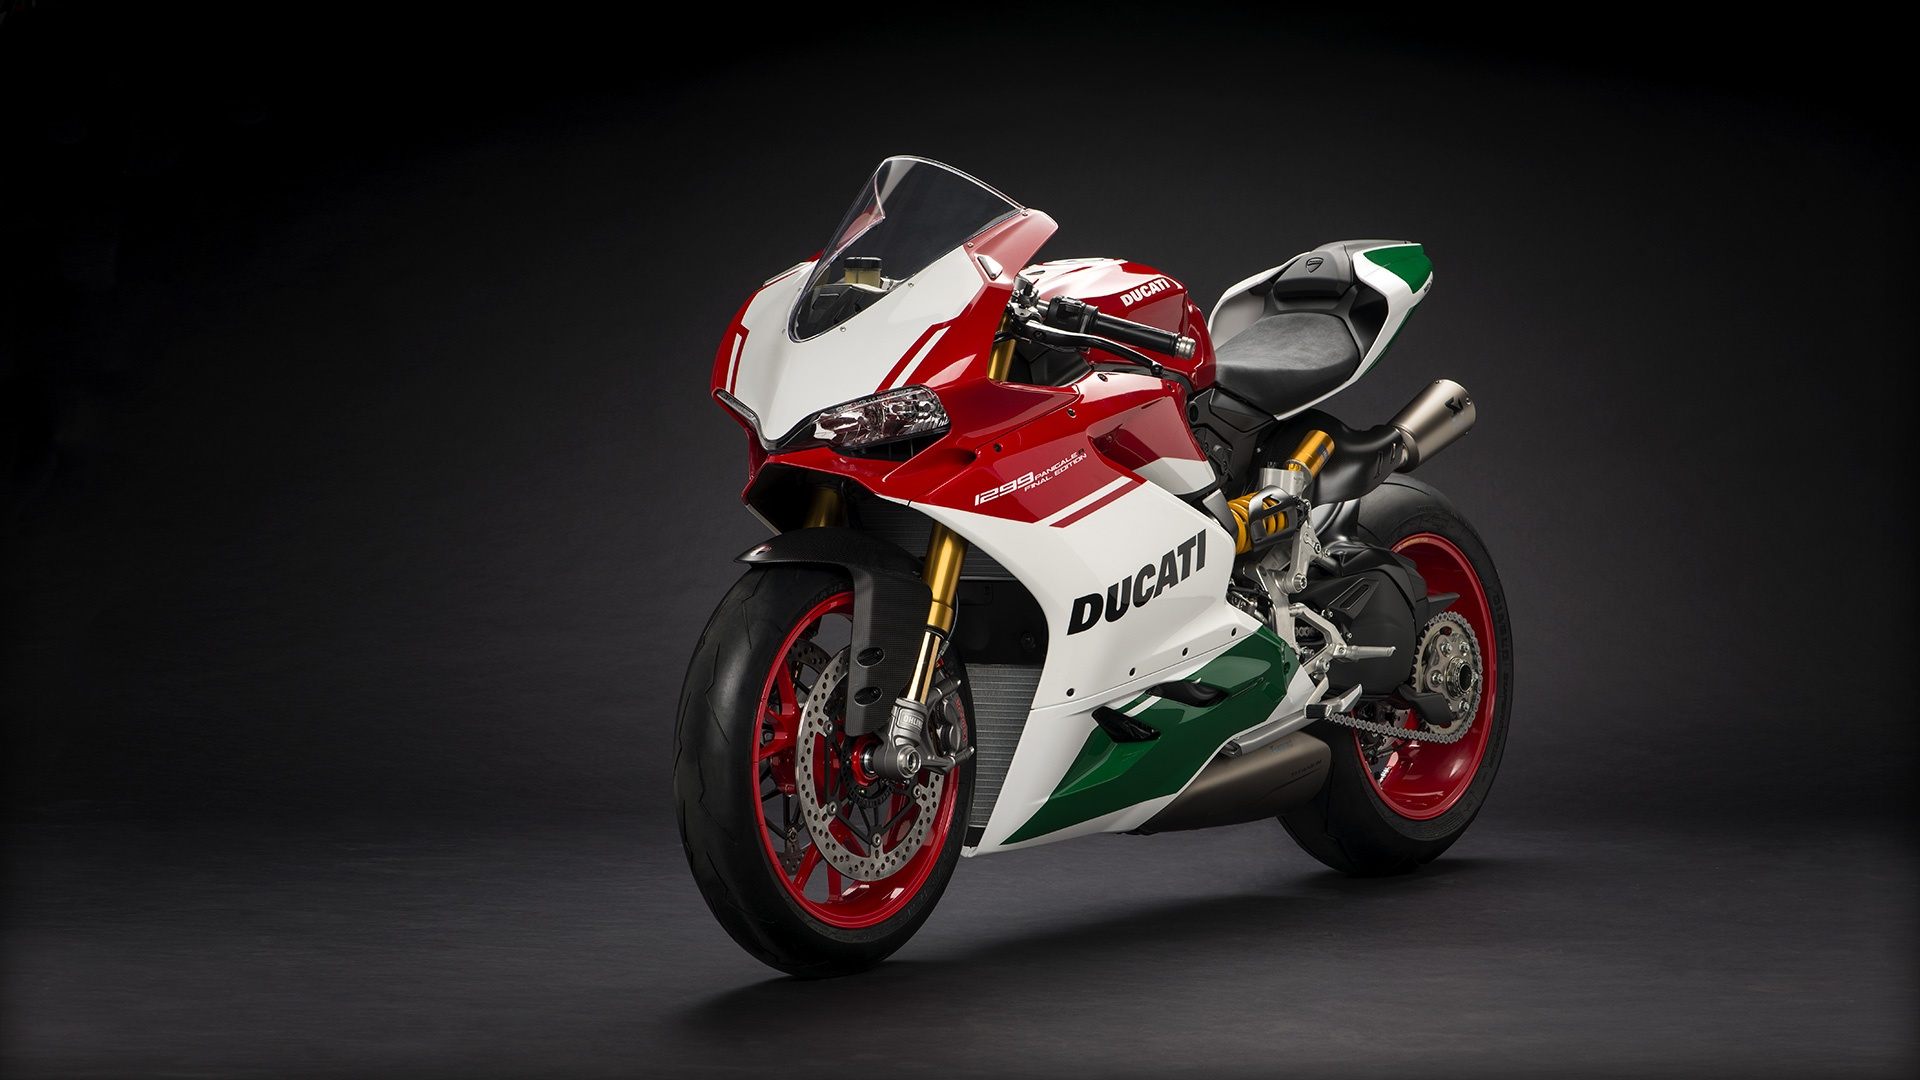 Panigale_Final-Edition_2018_Studio_FE_H01_Gallery_1920x1080.mediagallery_output_image_[1920x1080]